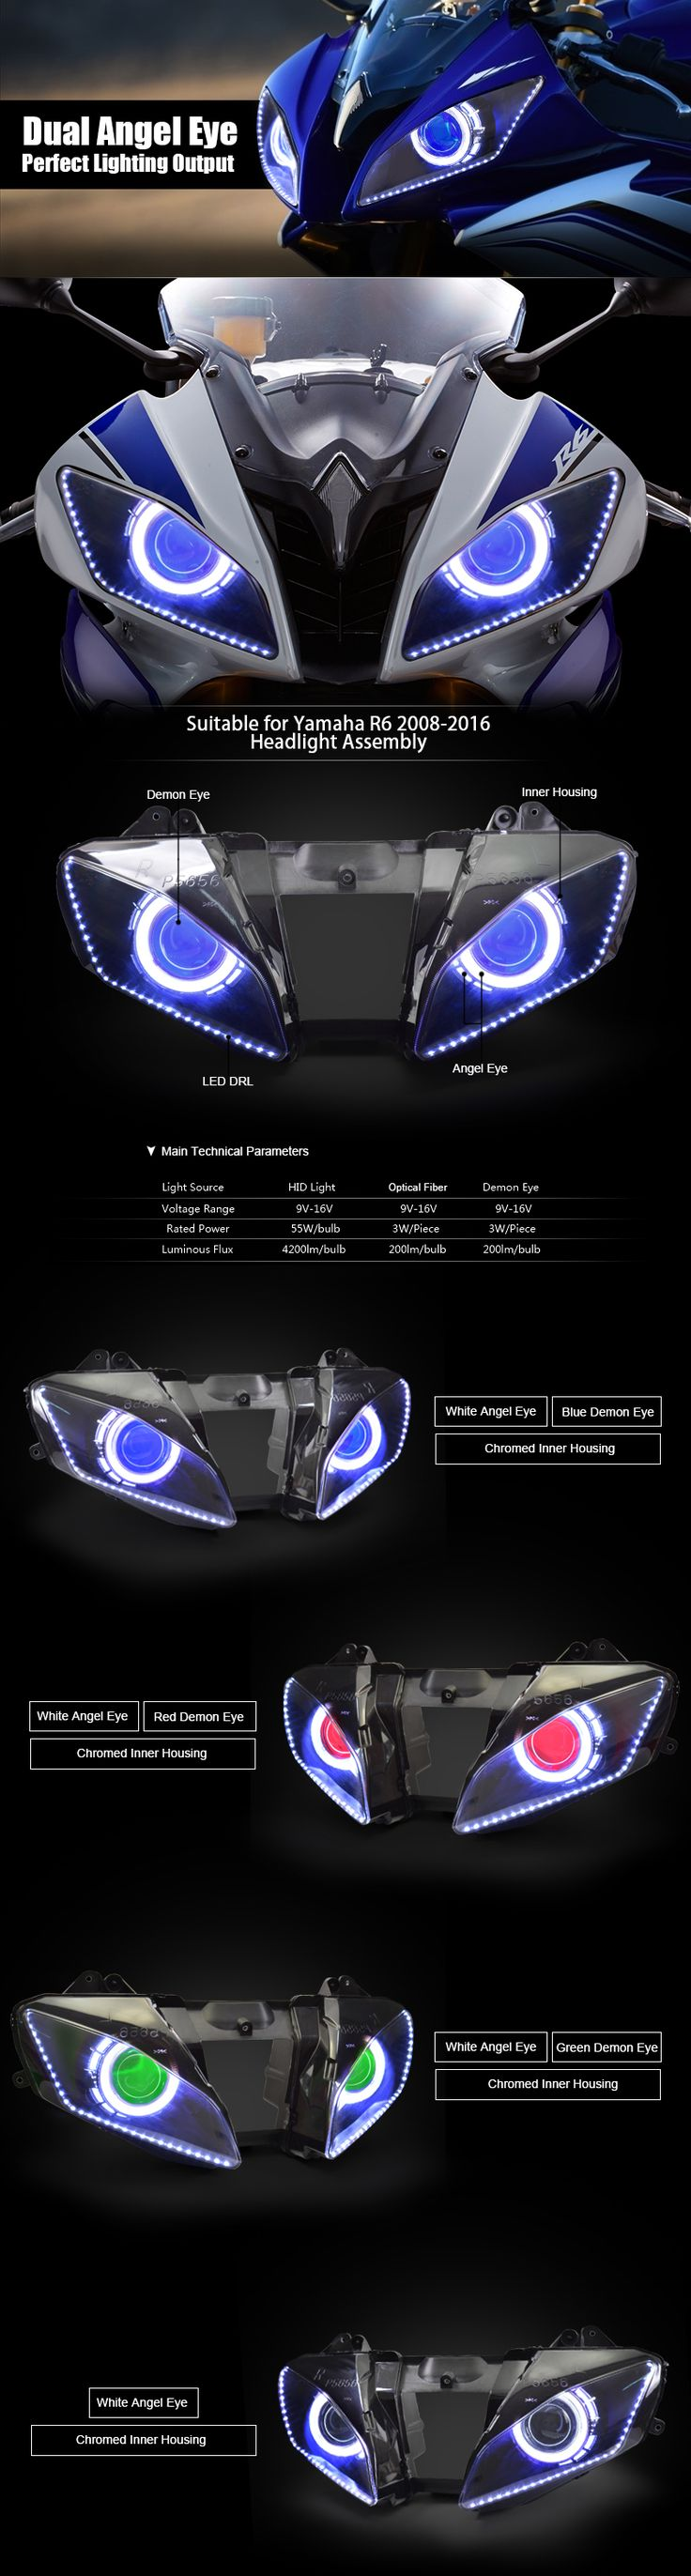 Yamaha R6 Angel Eye HID Projector Headlight Assembly 2008-2016